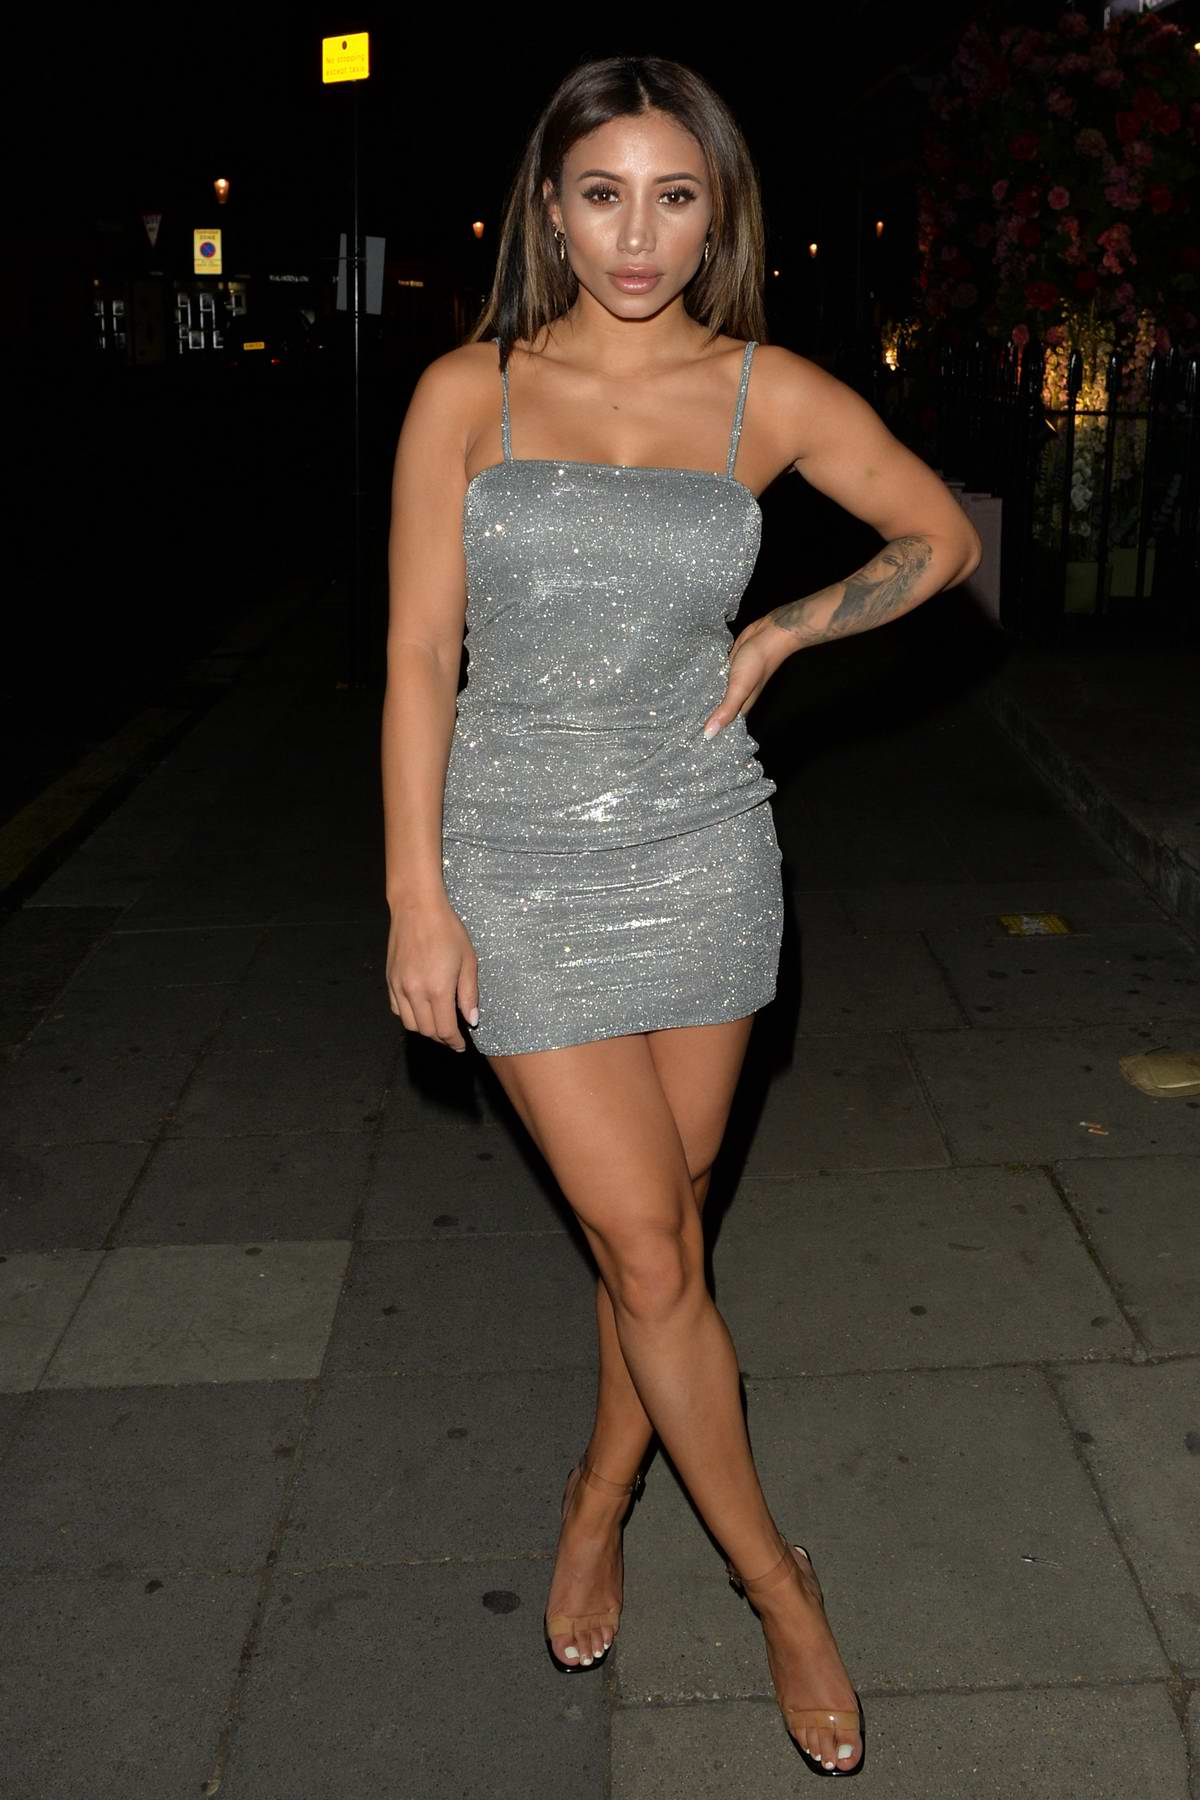 Kayleigh Morris wears a grey mini dress during a night out at Sumosan Twiga in Knightsbridge, London, UK